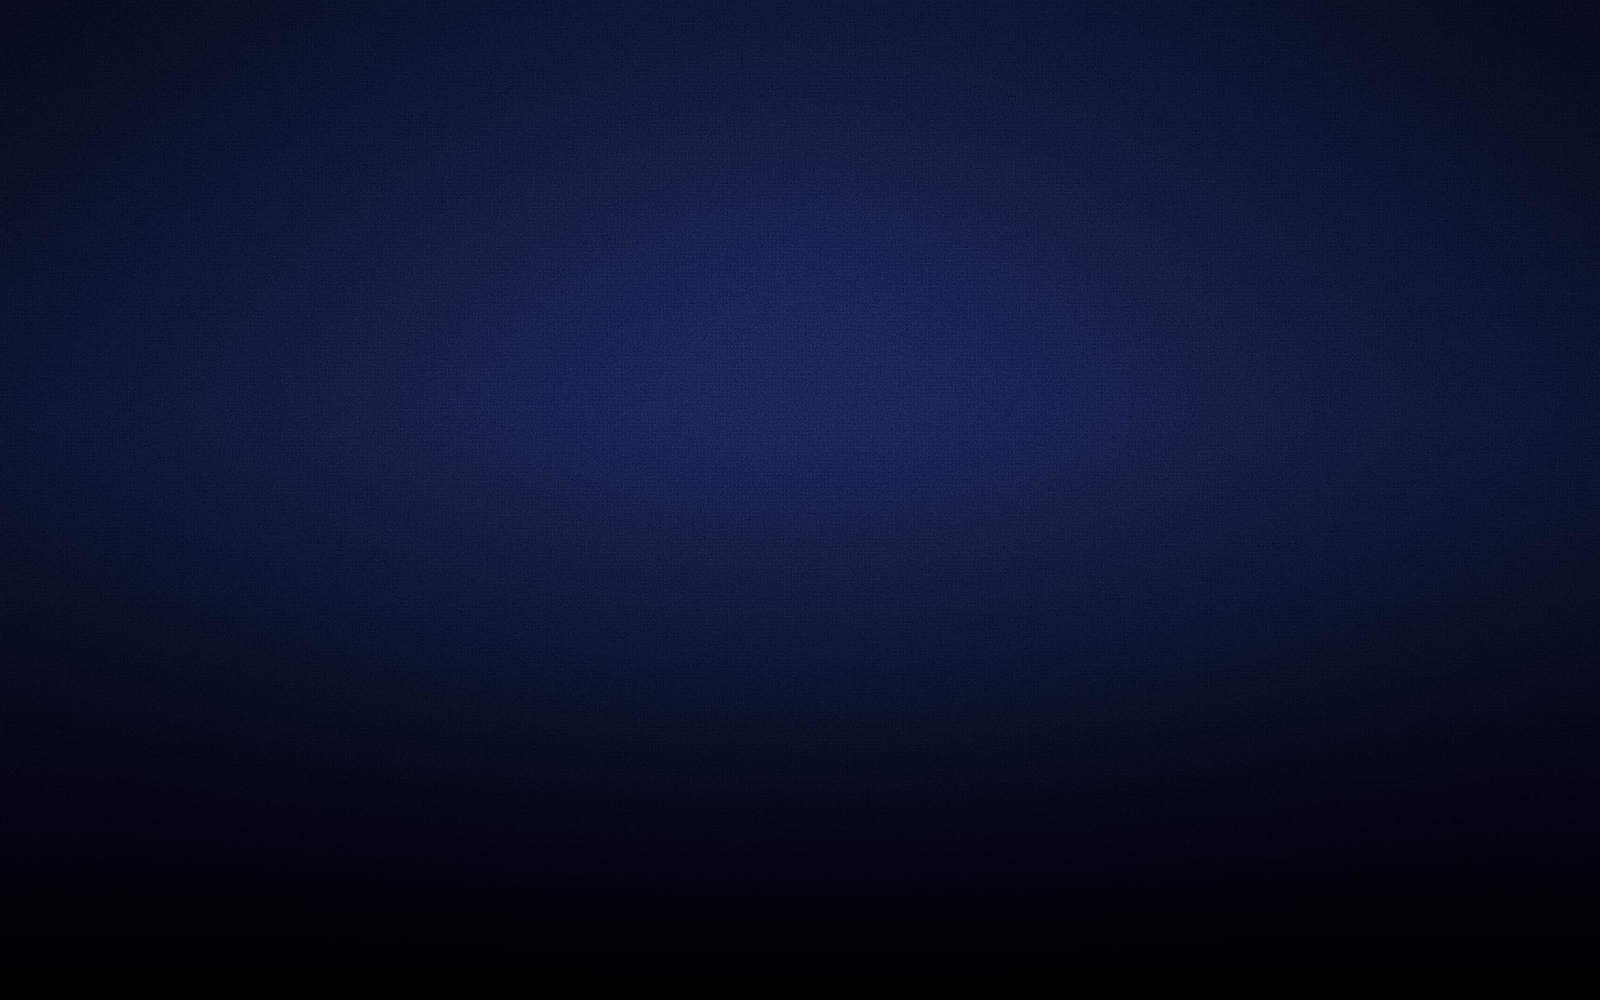 Blue-Solid-Background-Screensaver